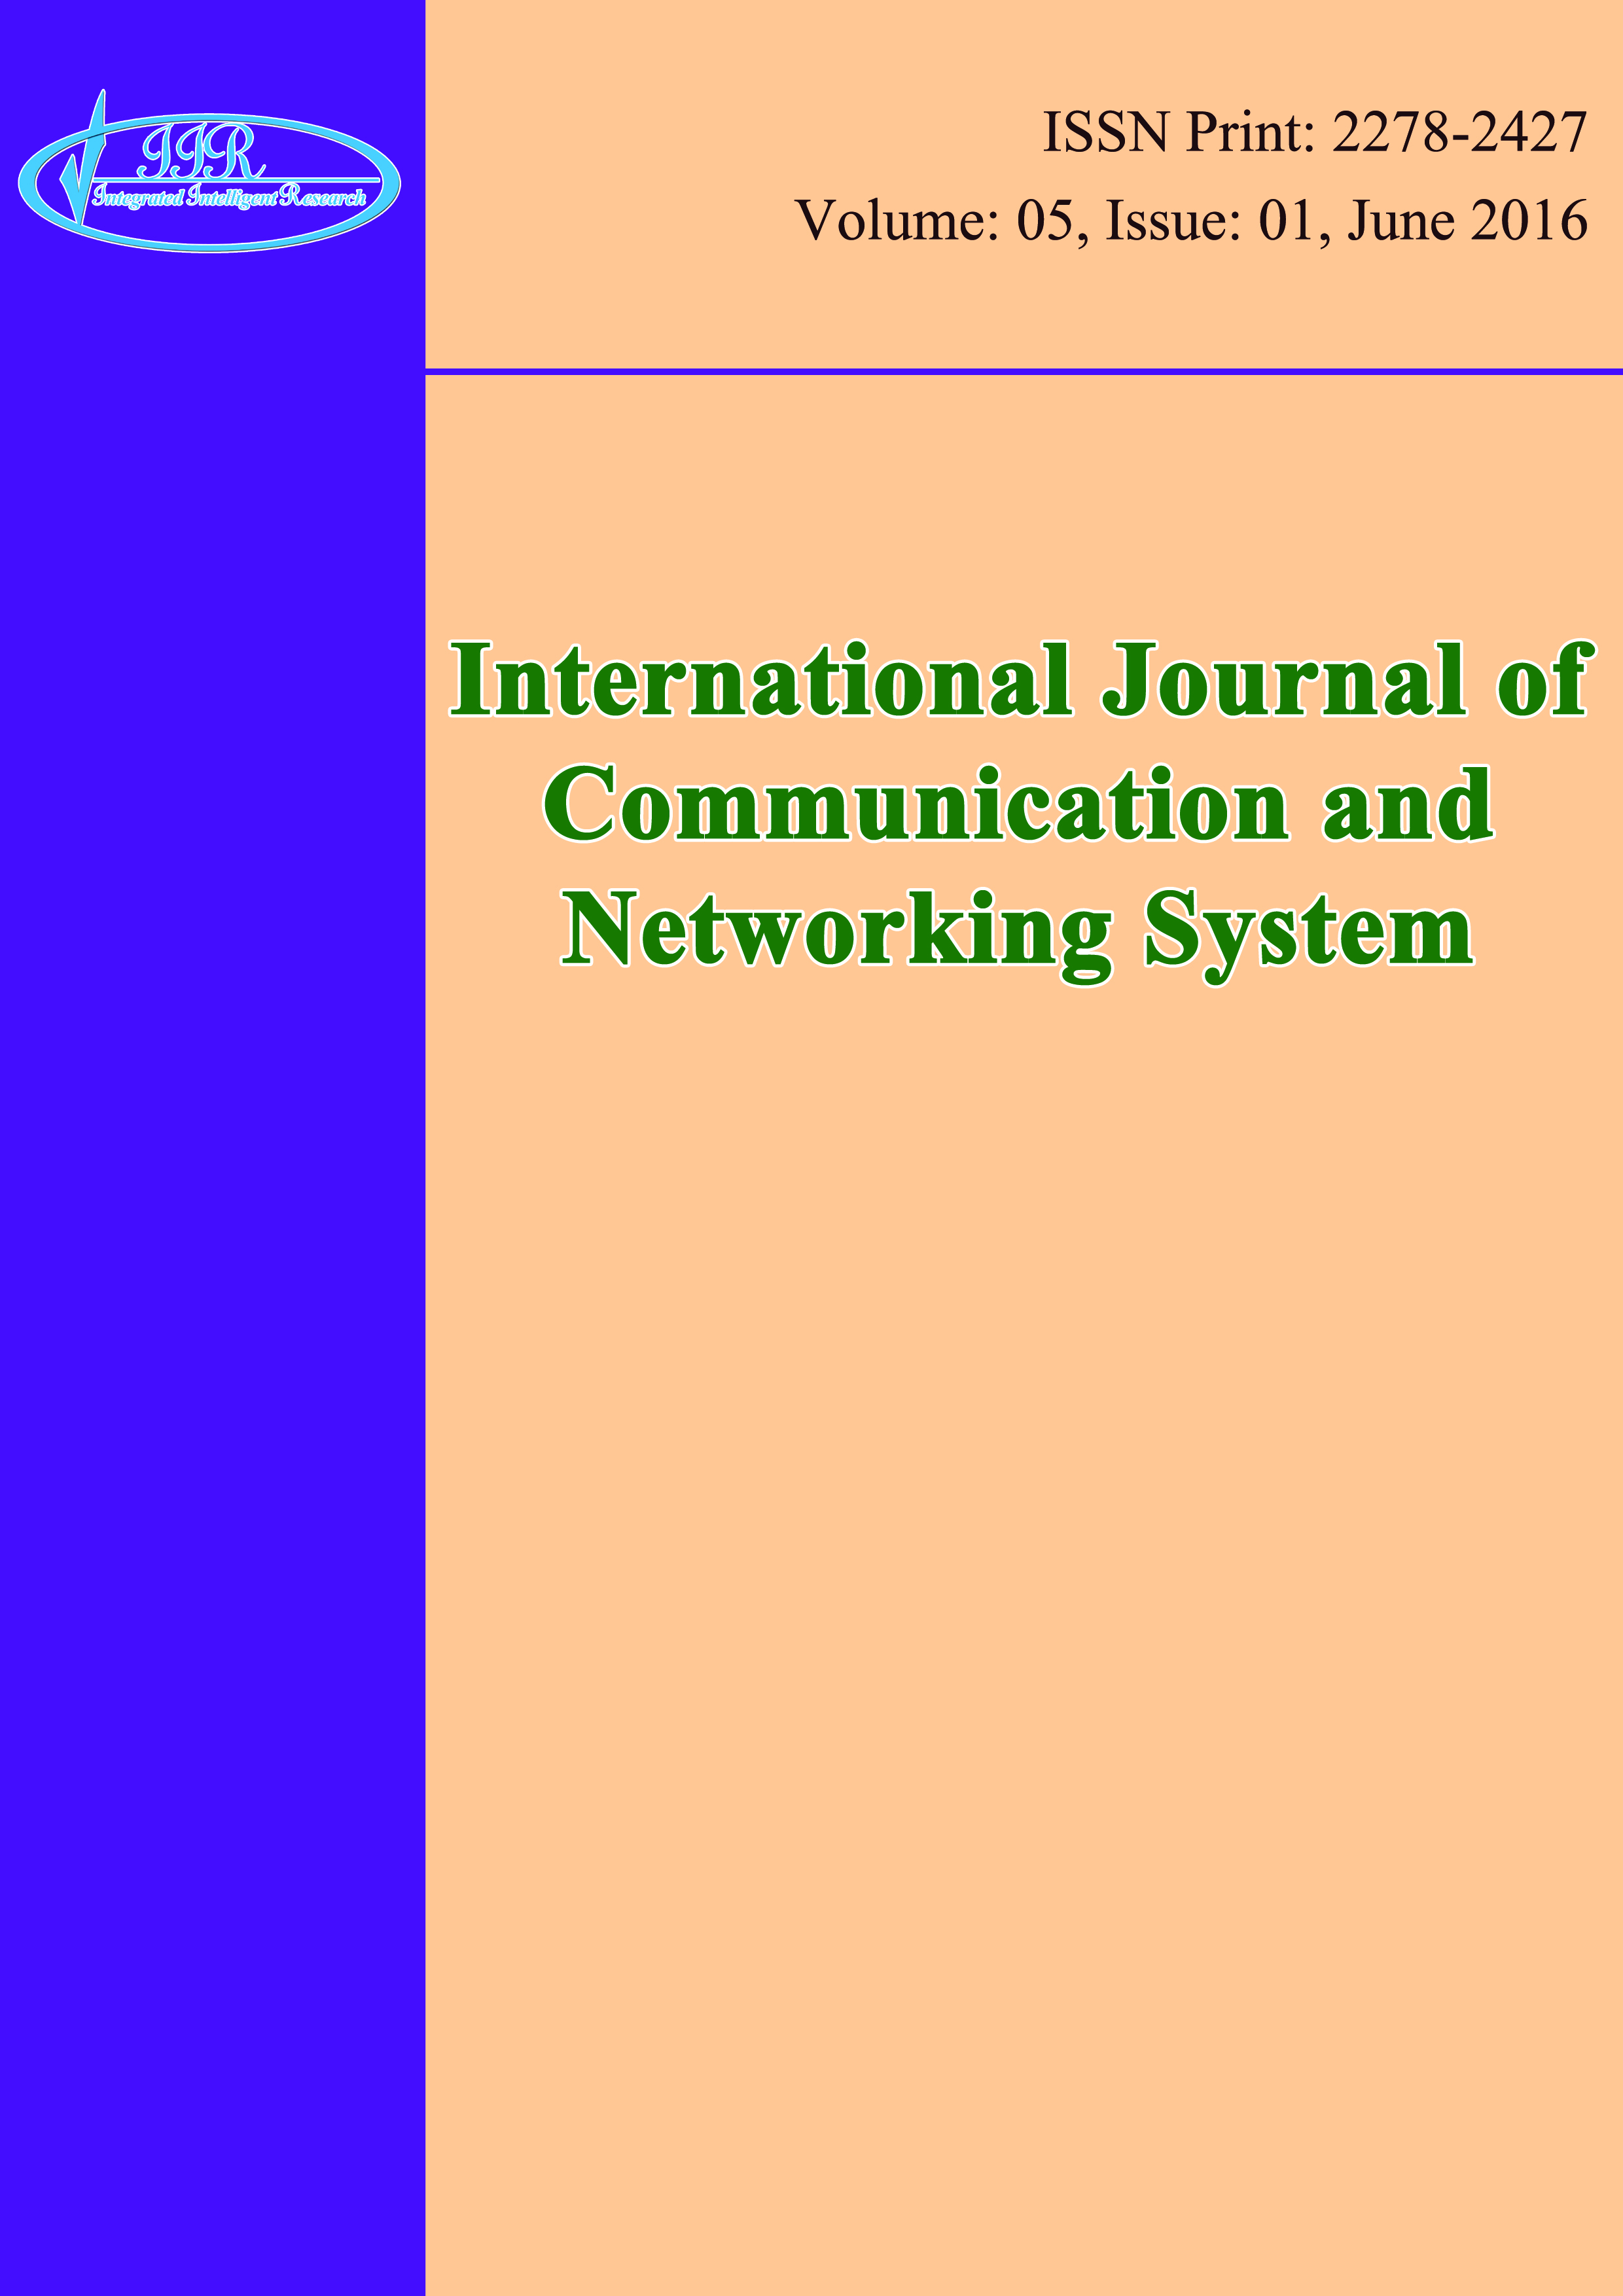 International Journal of Communication and Networking System